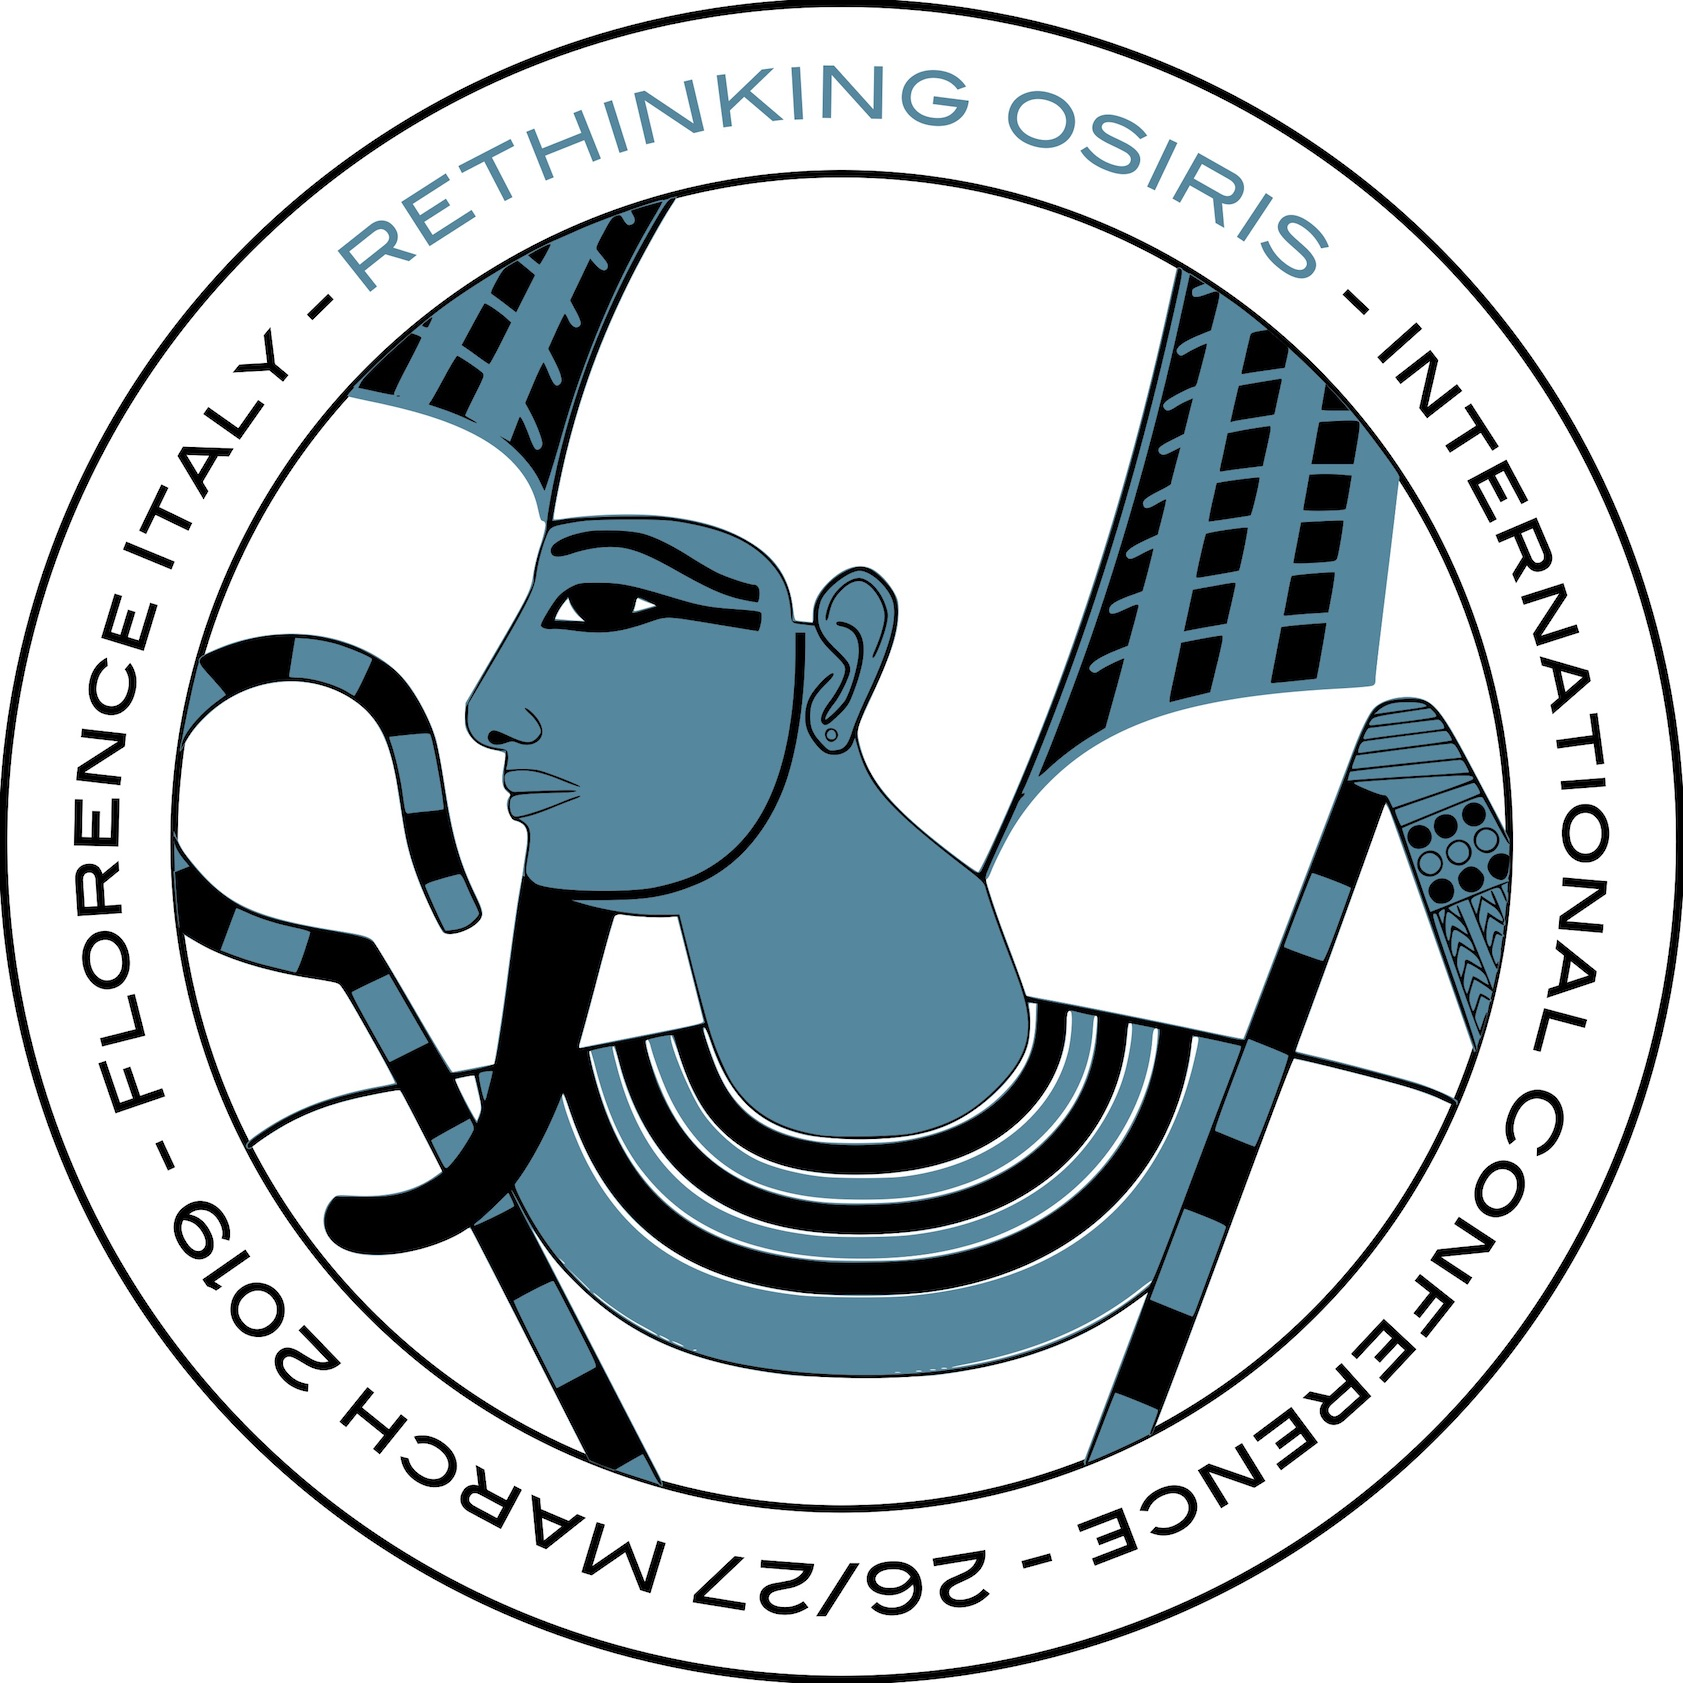 'Rethinking Osiris' - International Conference